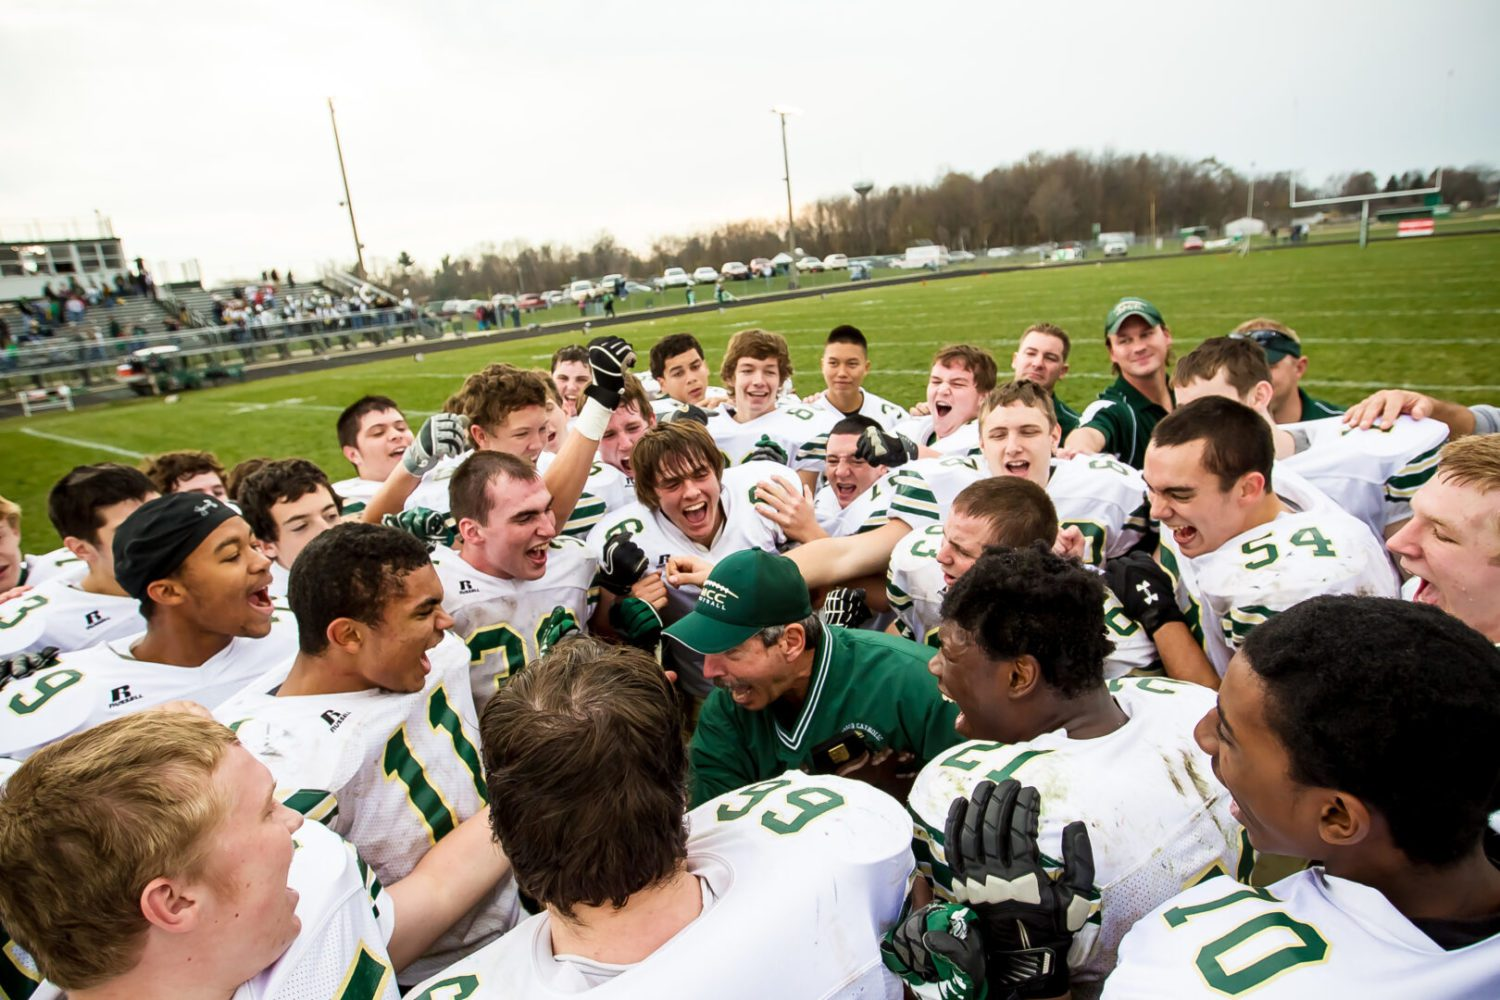 Muskegon Catholic guns down playoff nemesis Mendon to earn spot in Division 8 football semifinals